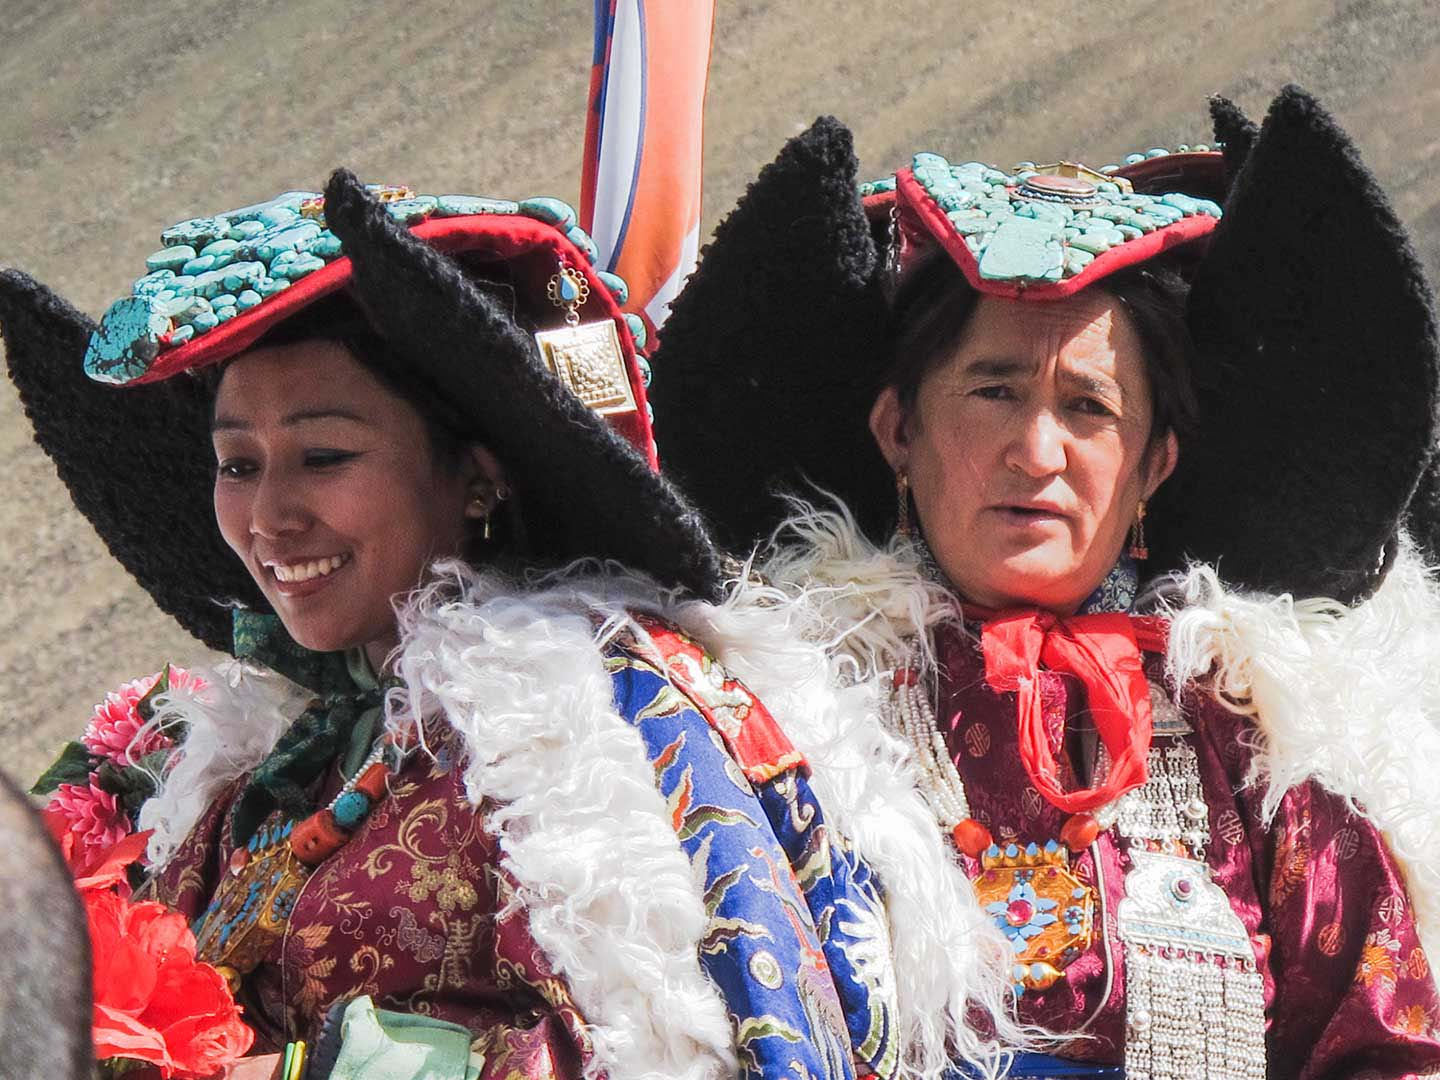 Leh women wearing their coral and turquoise peraks to see the Dalai Lama